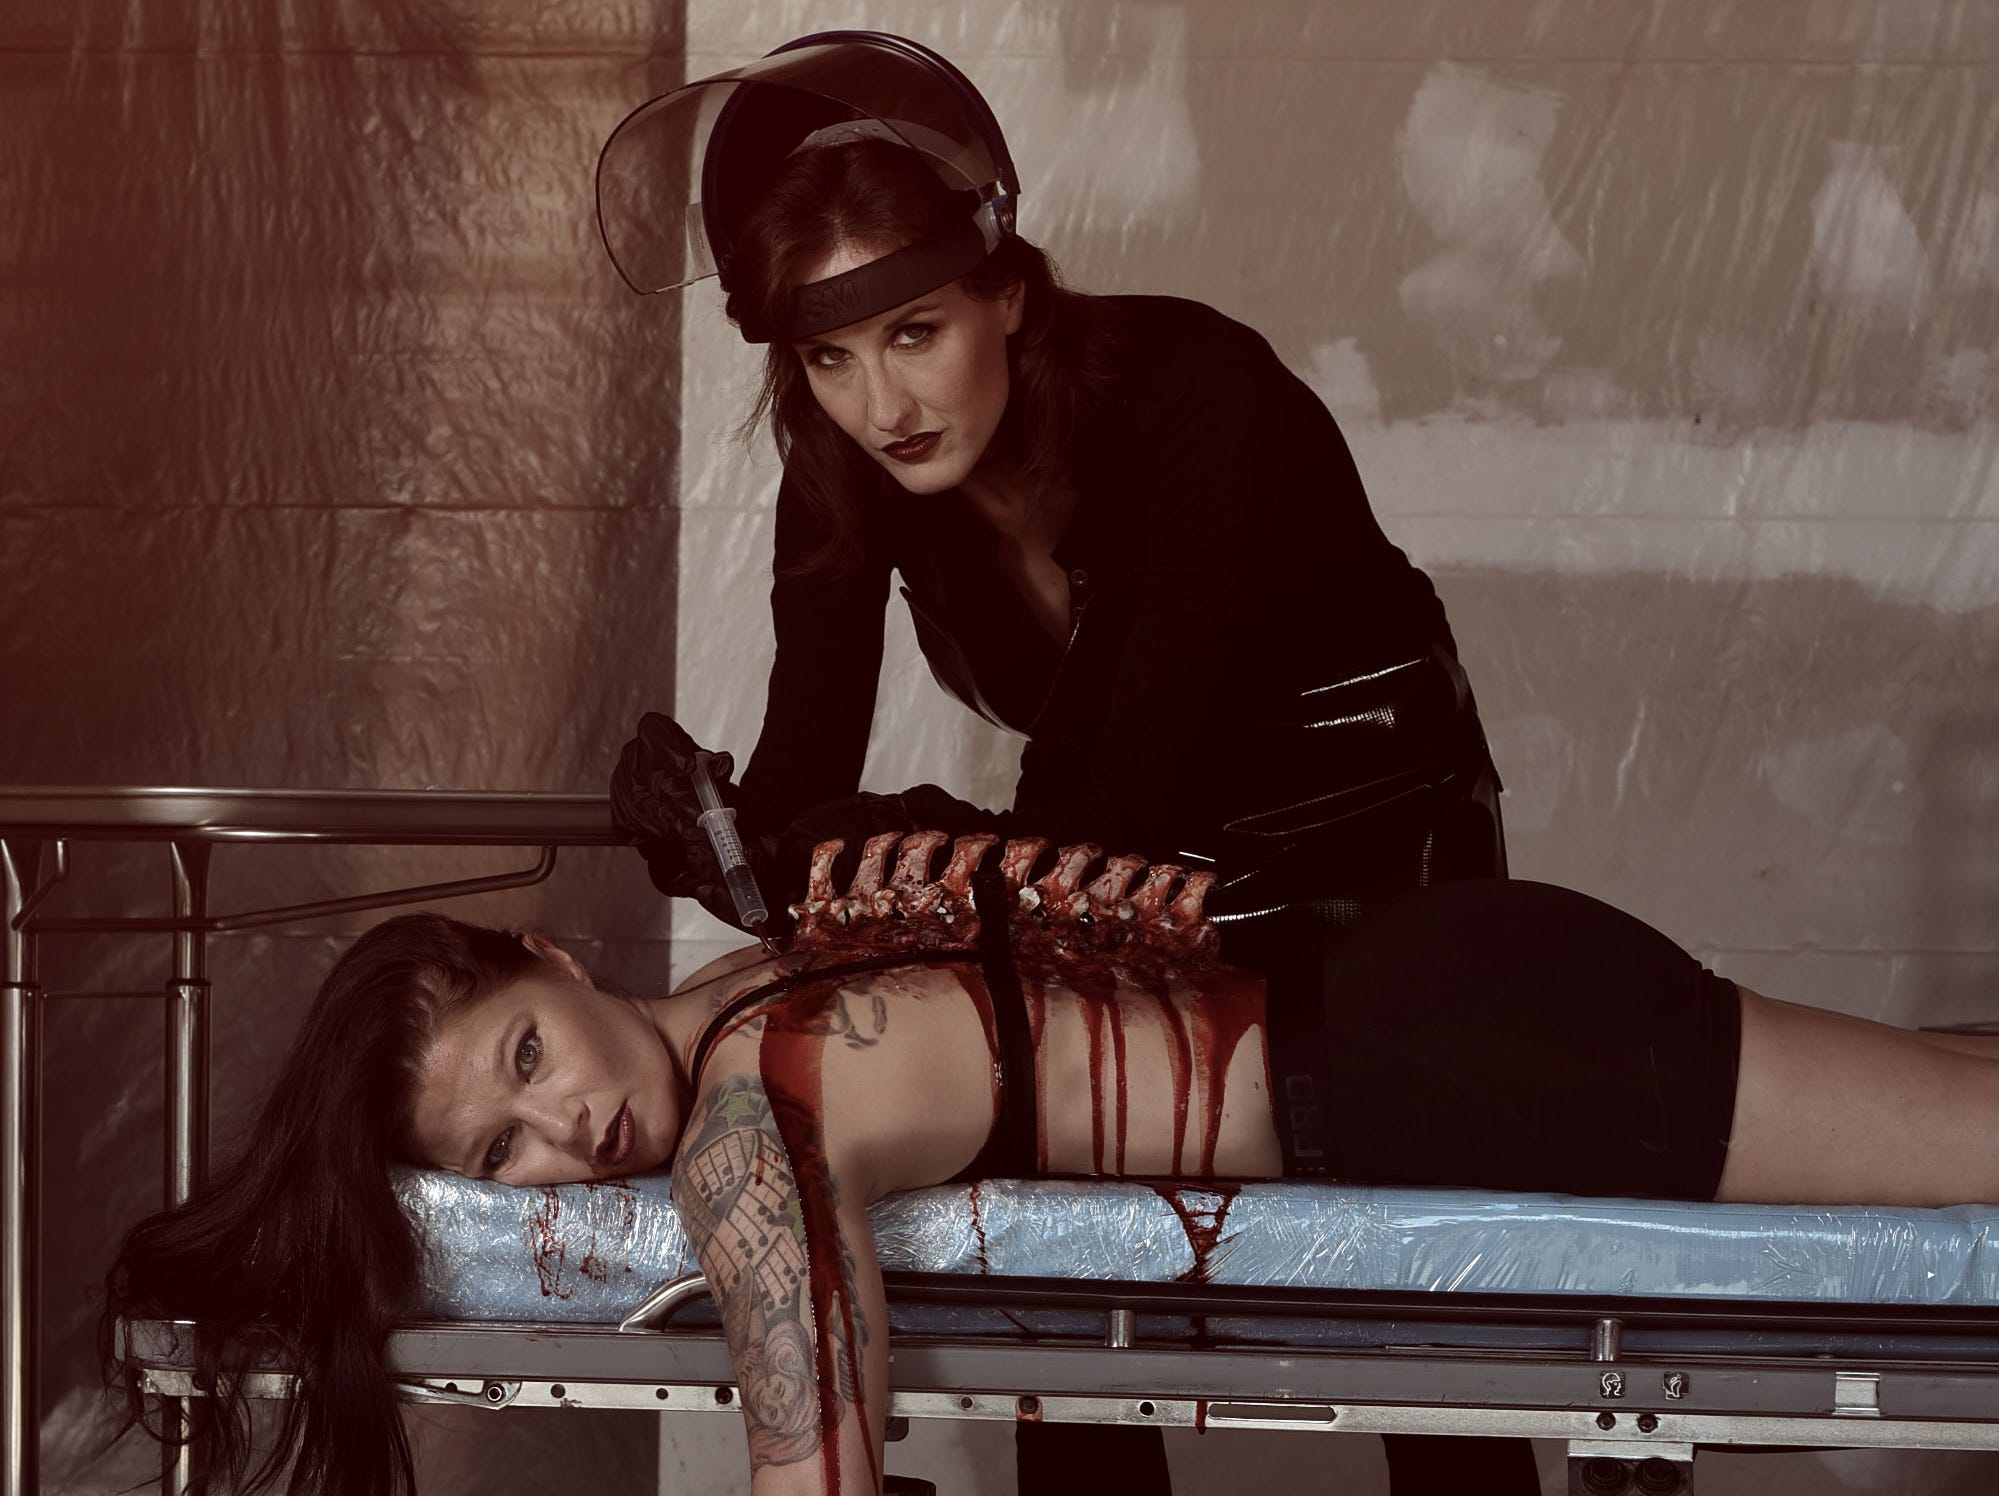 Lori Cannon as the mad physician and Leighann Word as the victim in Mallory Bertrand's horror-inspired photo series